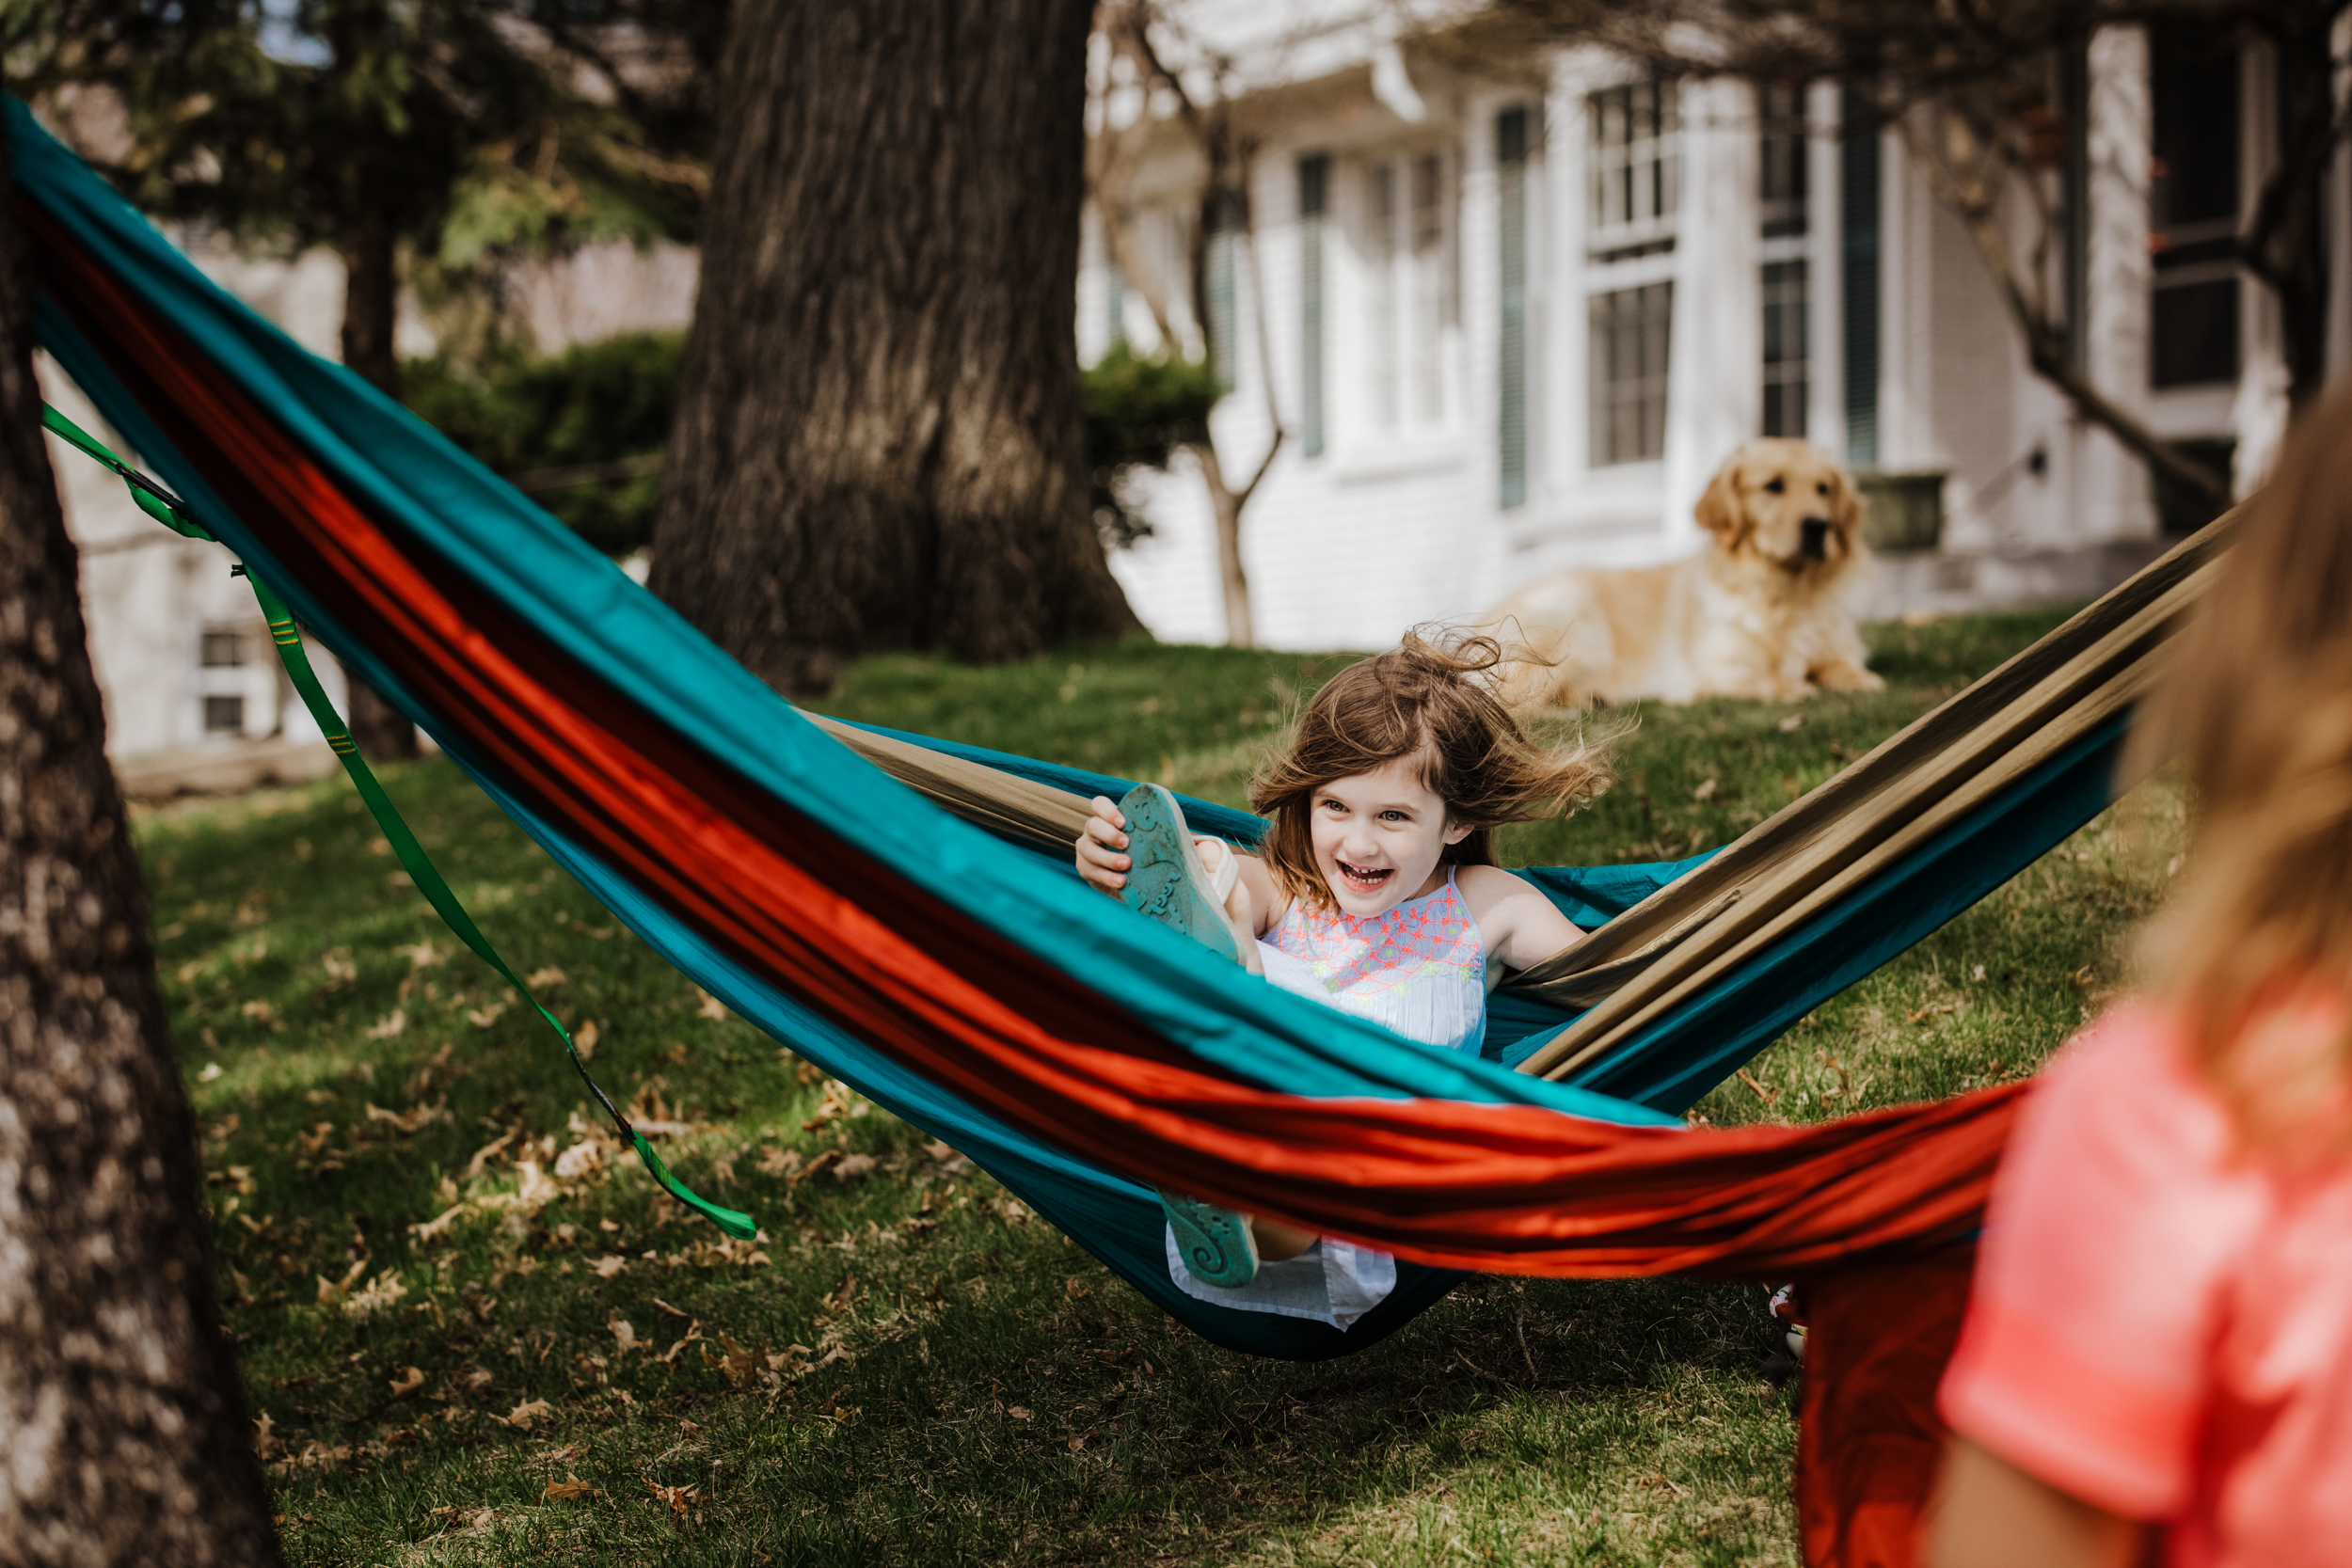 All she needs - sis, hammock and pup